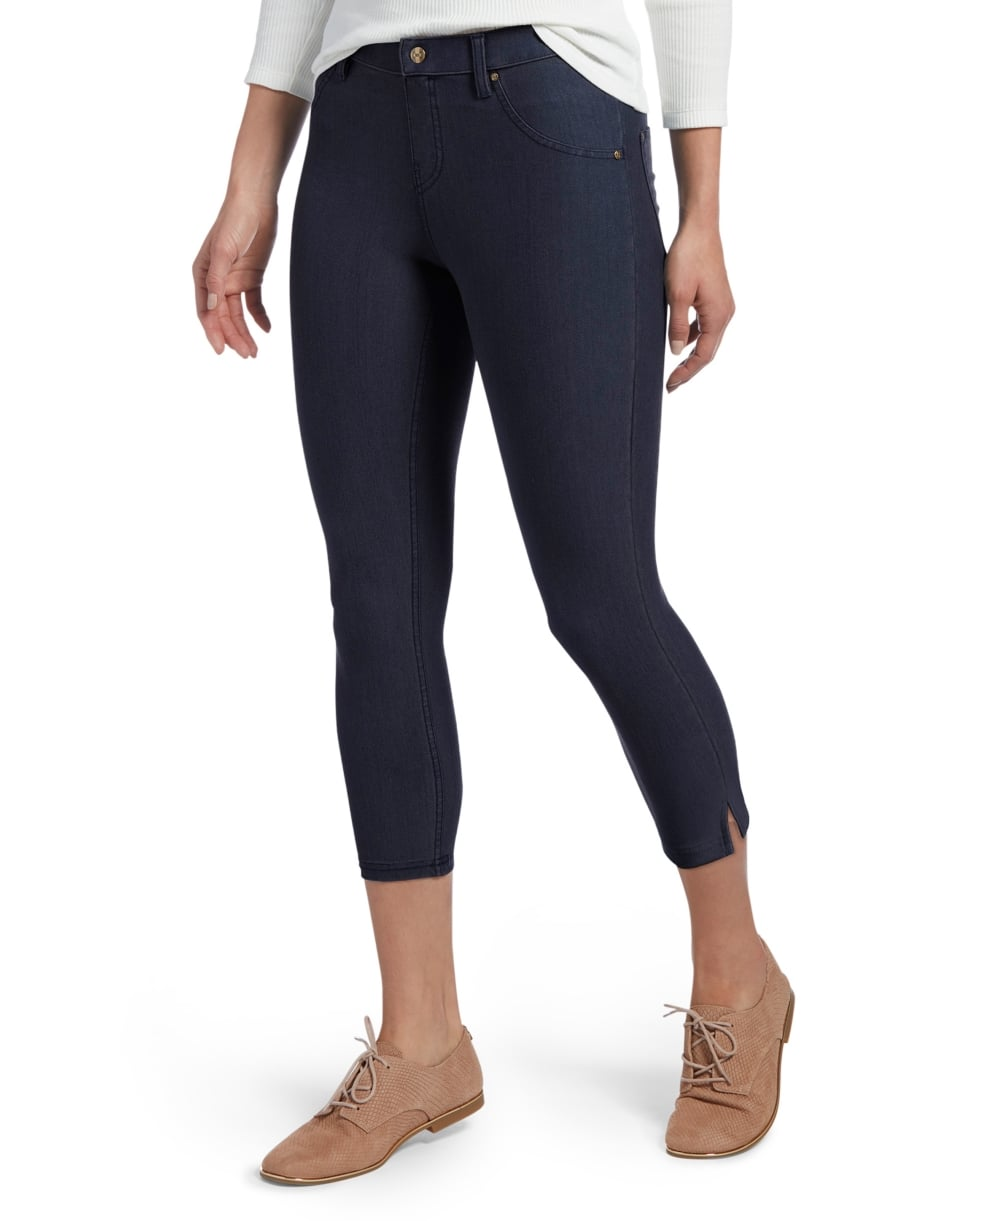 33dfe3e52d8367 HUE Ankle Slit Essential Denim Capri - Leggings from luxury-legs.com UK